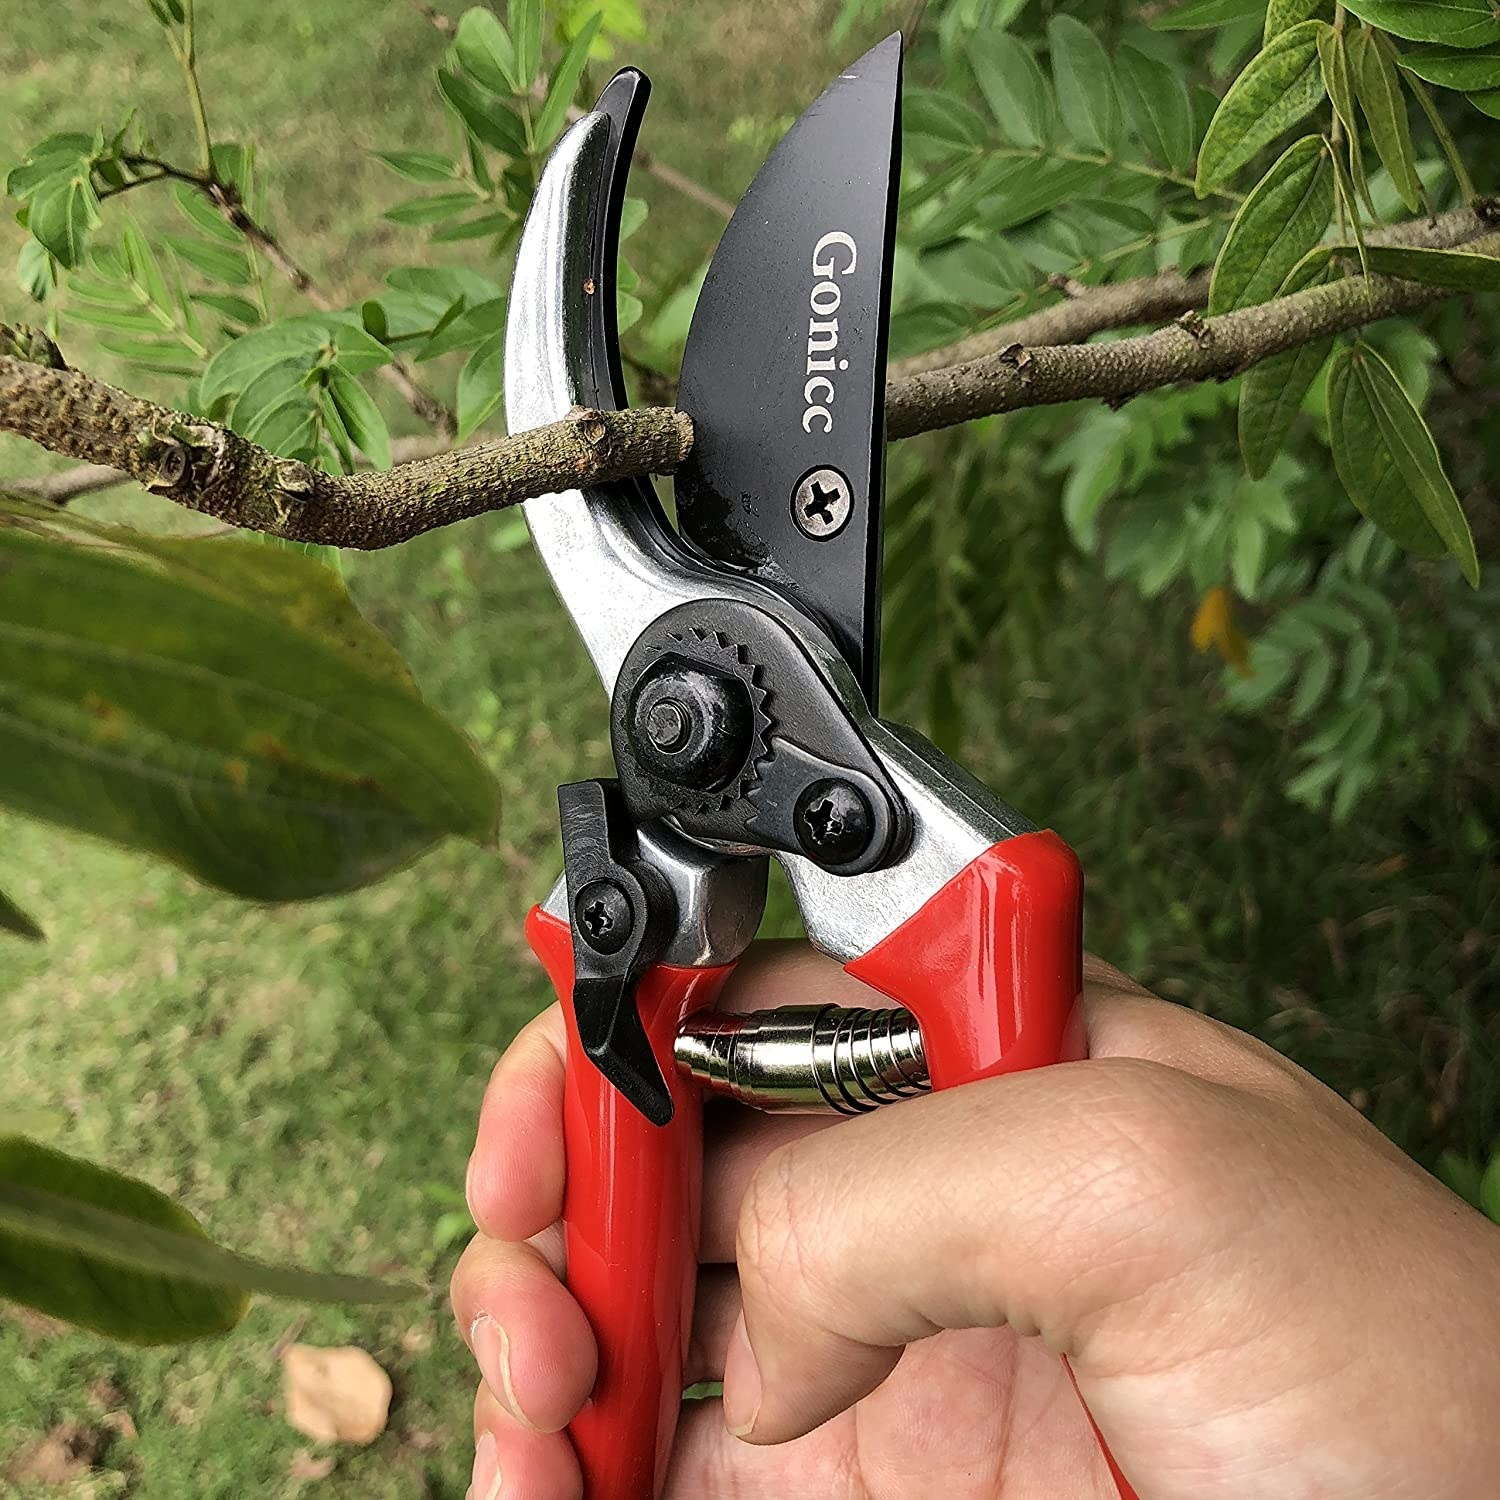 pruning sheers with a red handle